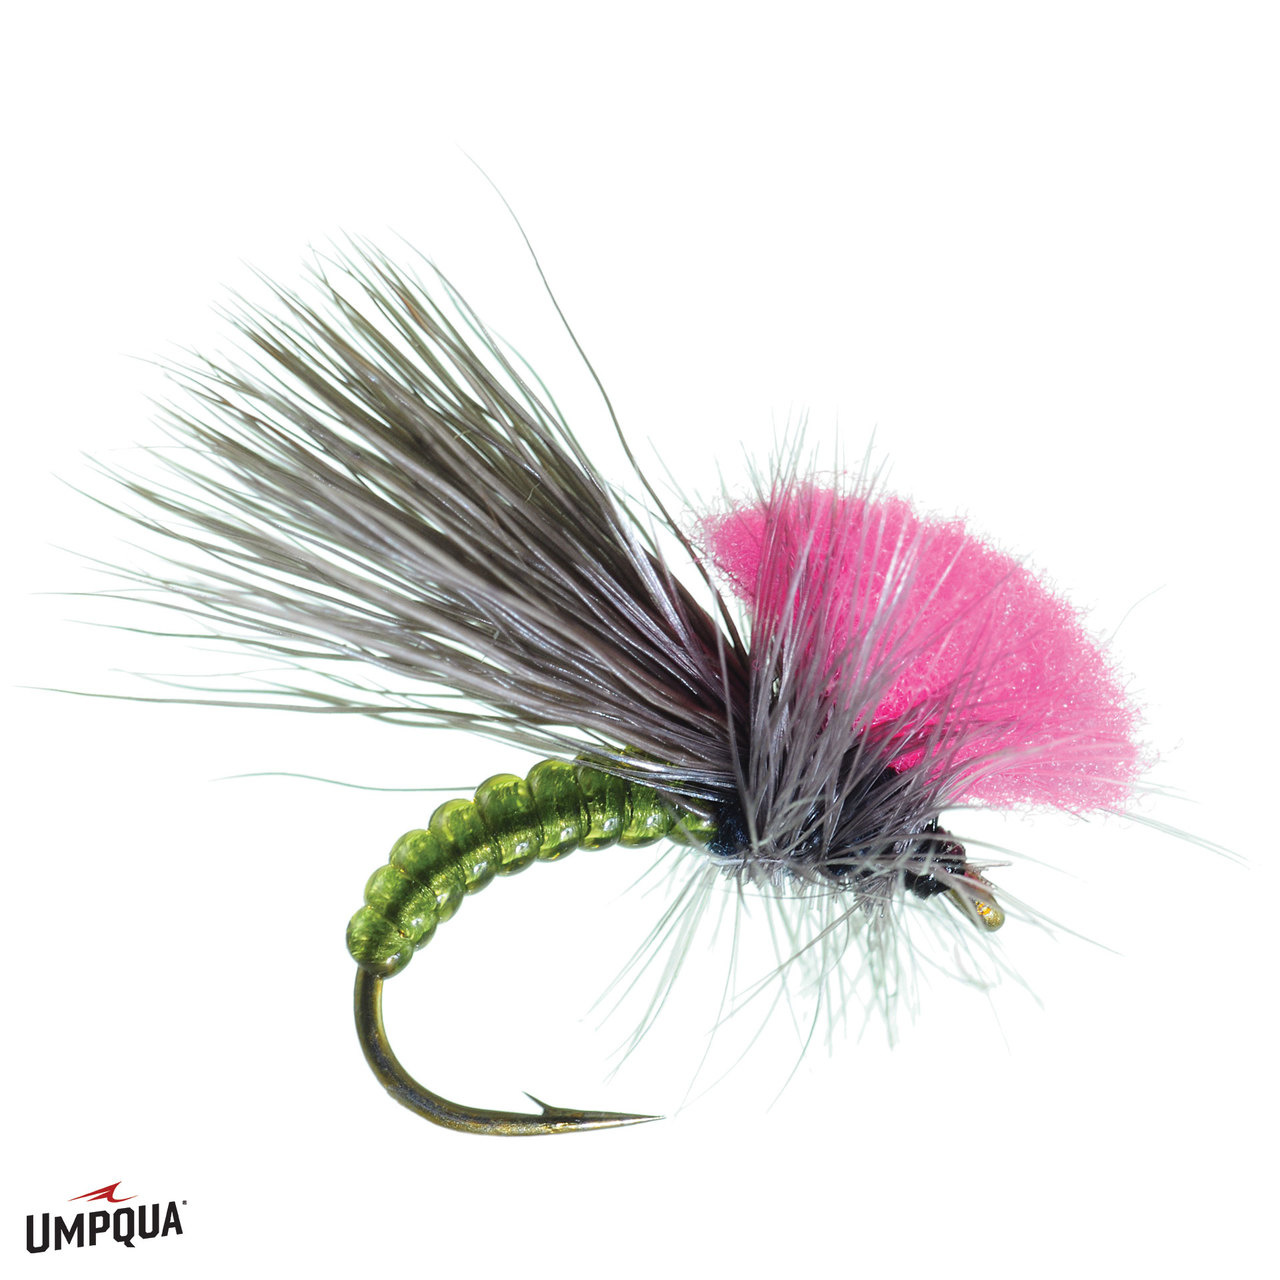 Umpqua Clown Shoe Caddis Dry